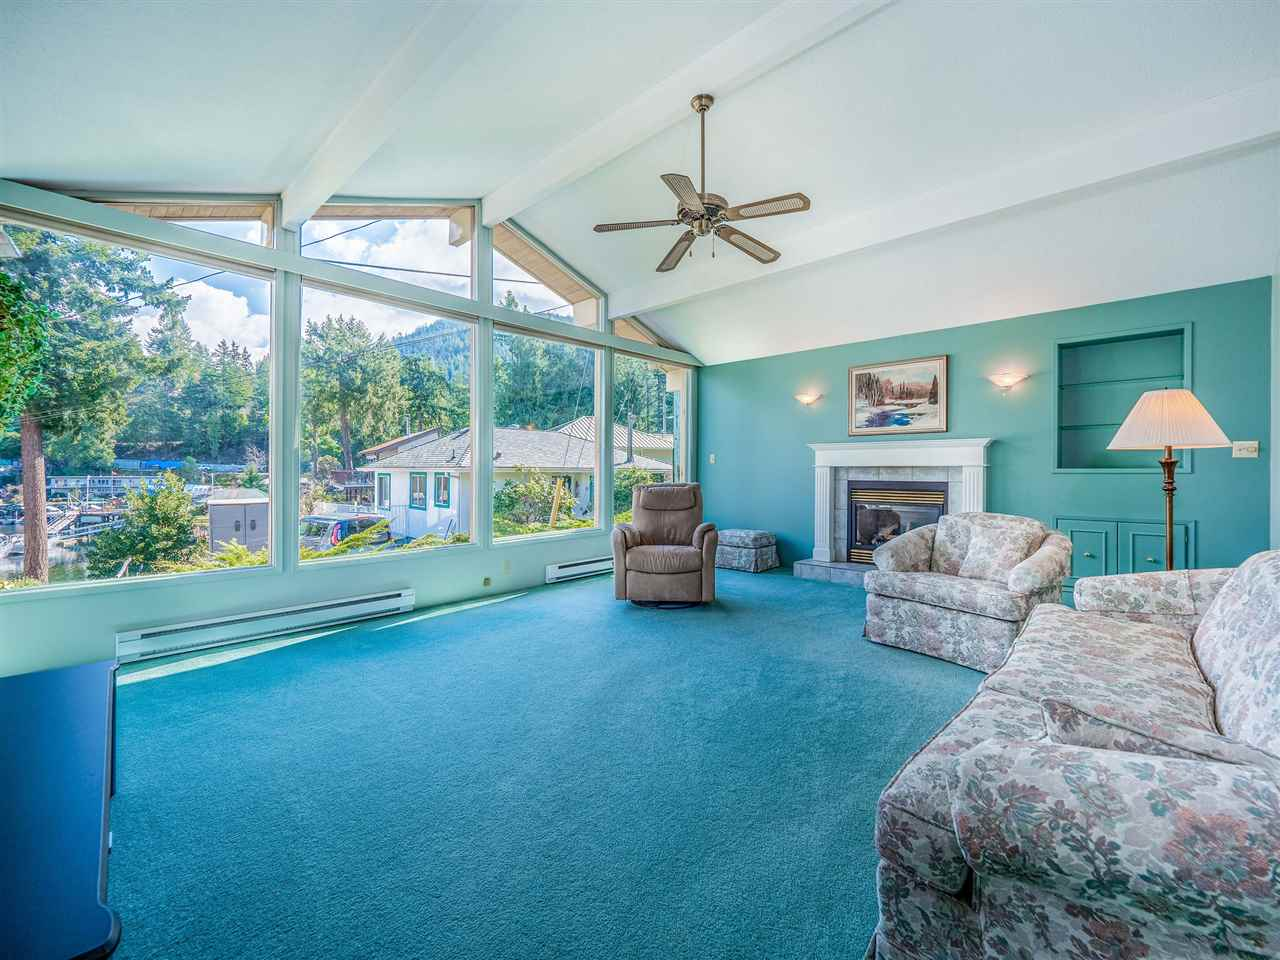 11 4995 GONZALES ROAD - Pender Harbour Egmont House/Single Family for sale, 2 Bedrooms (R2447947) - #7